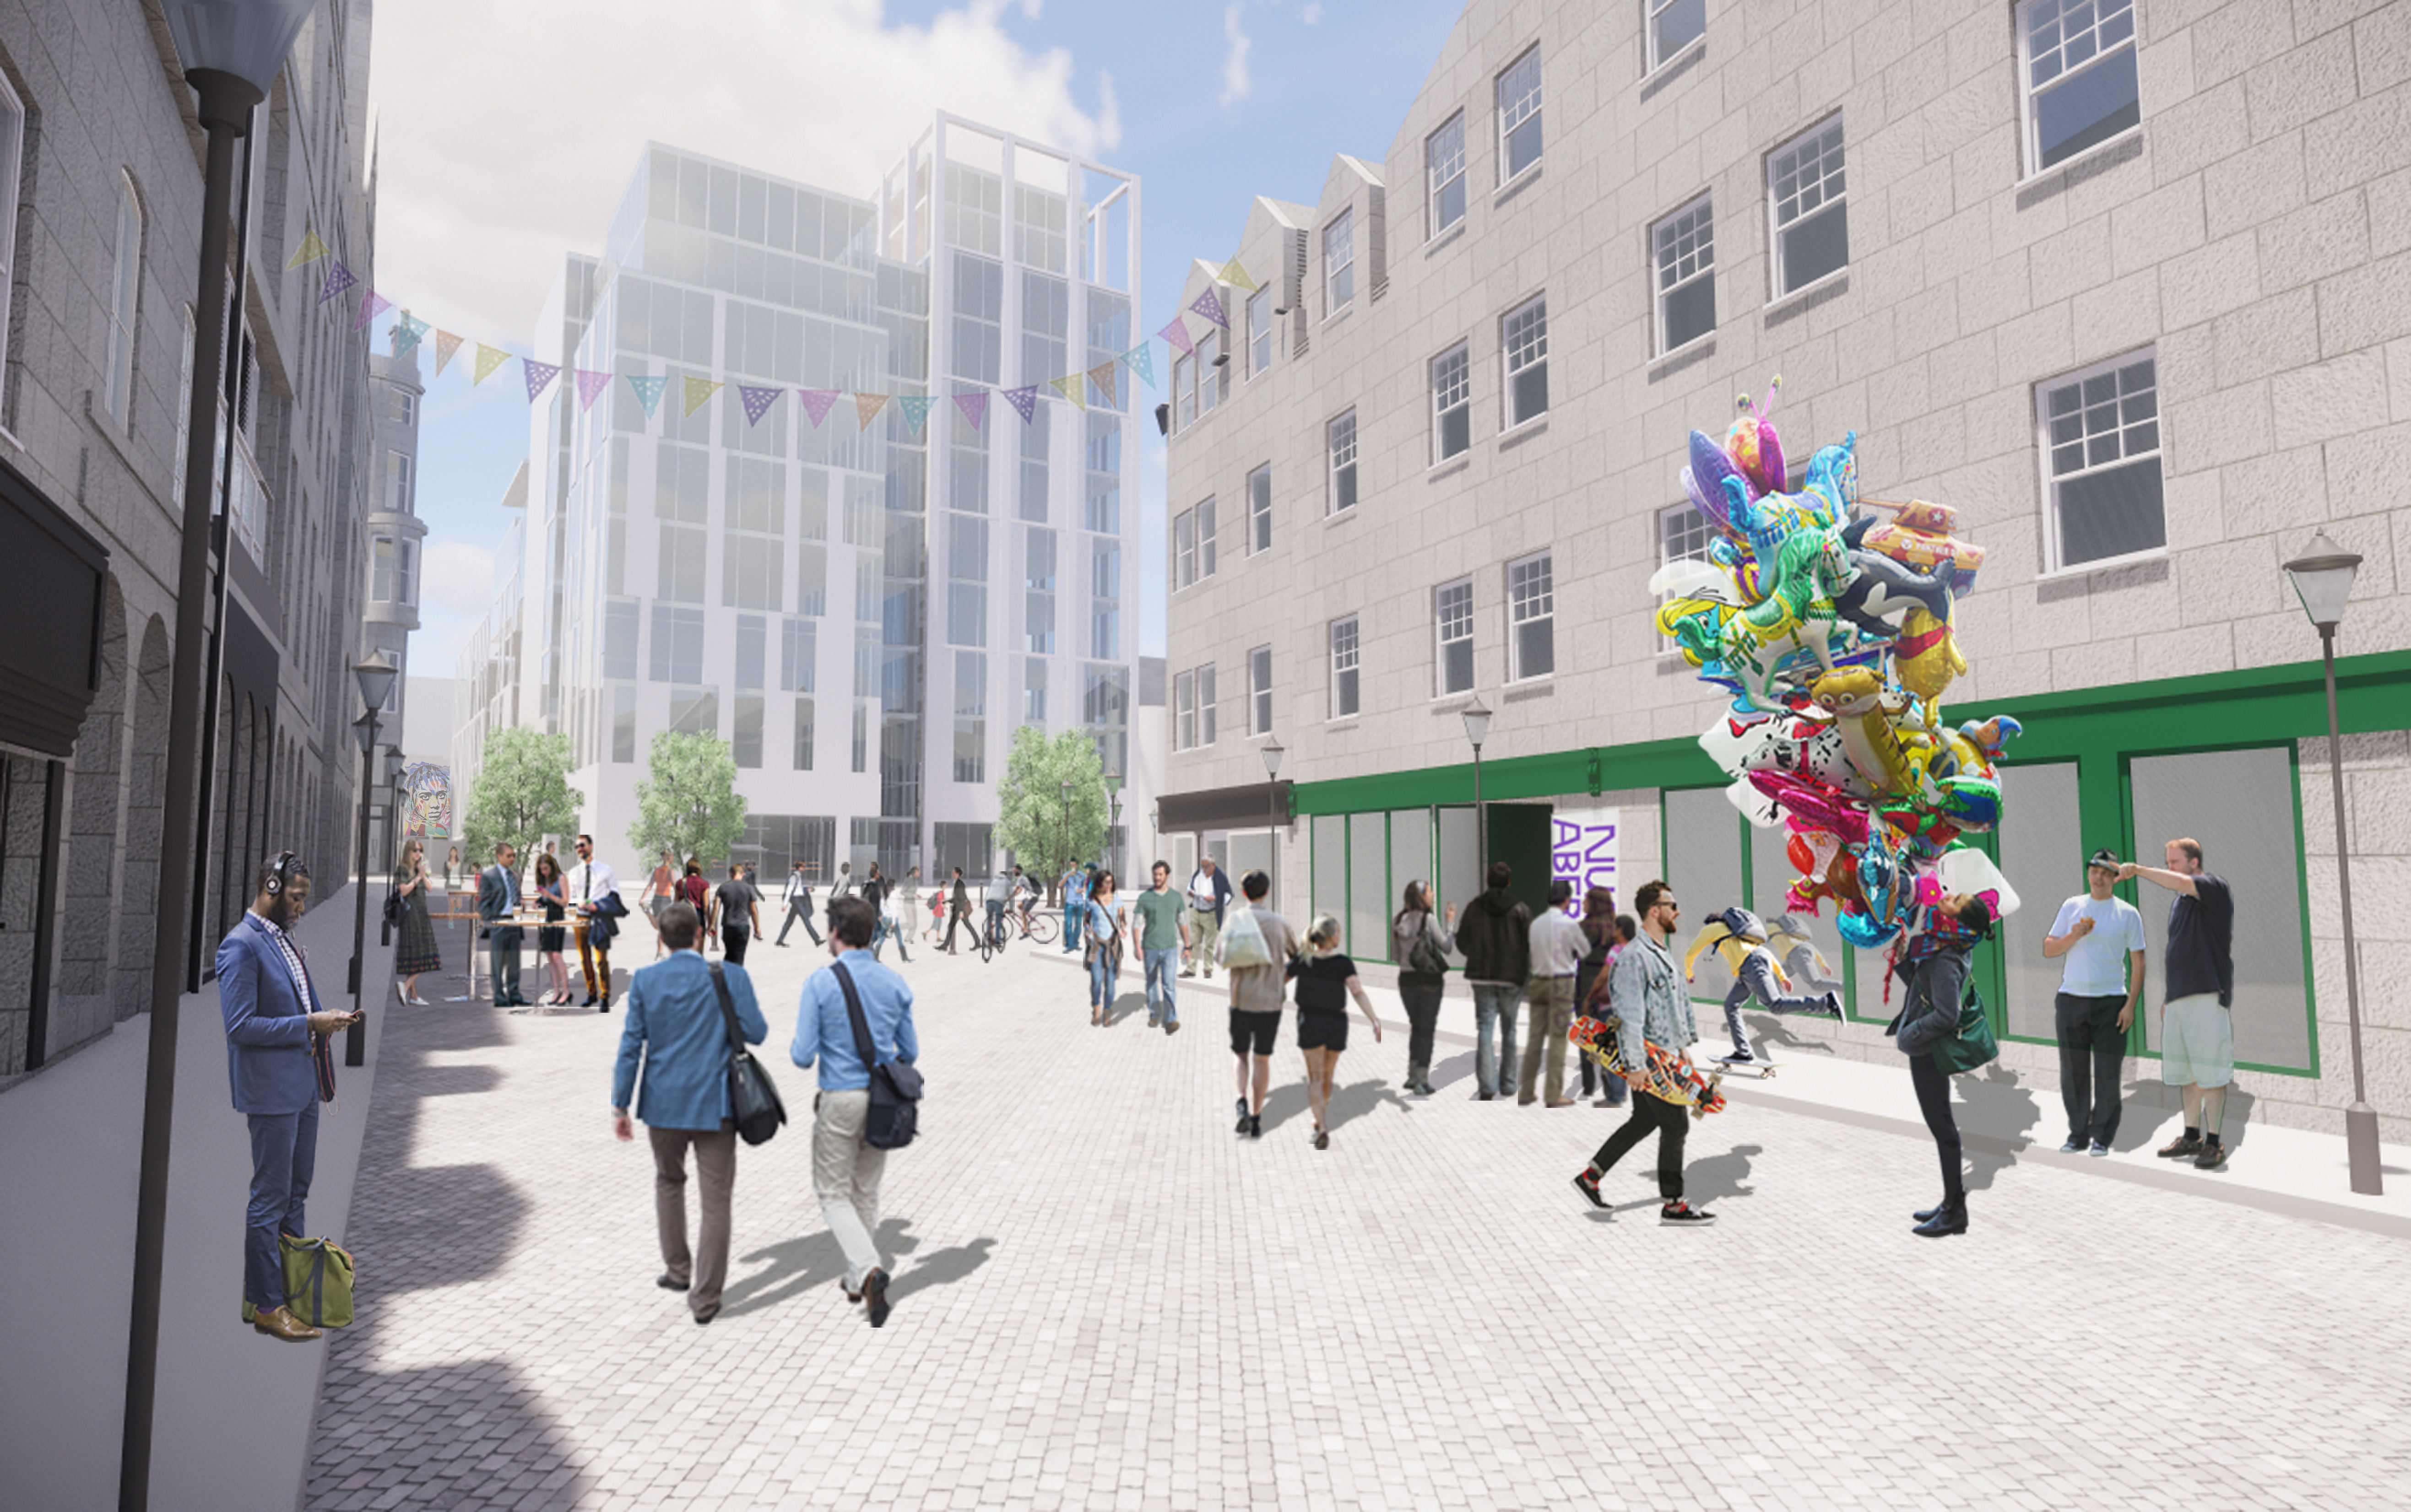 An artist's impression of what the new building will look like from The Green.